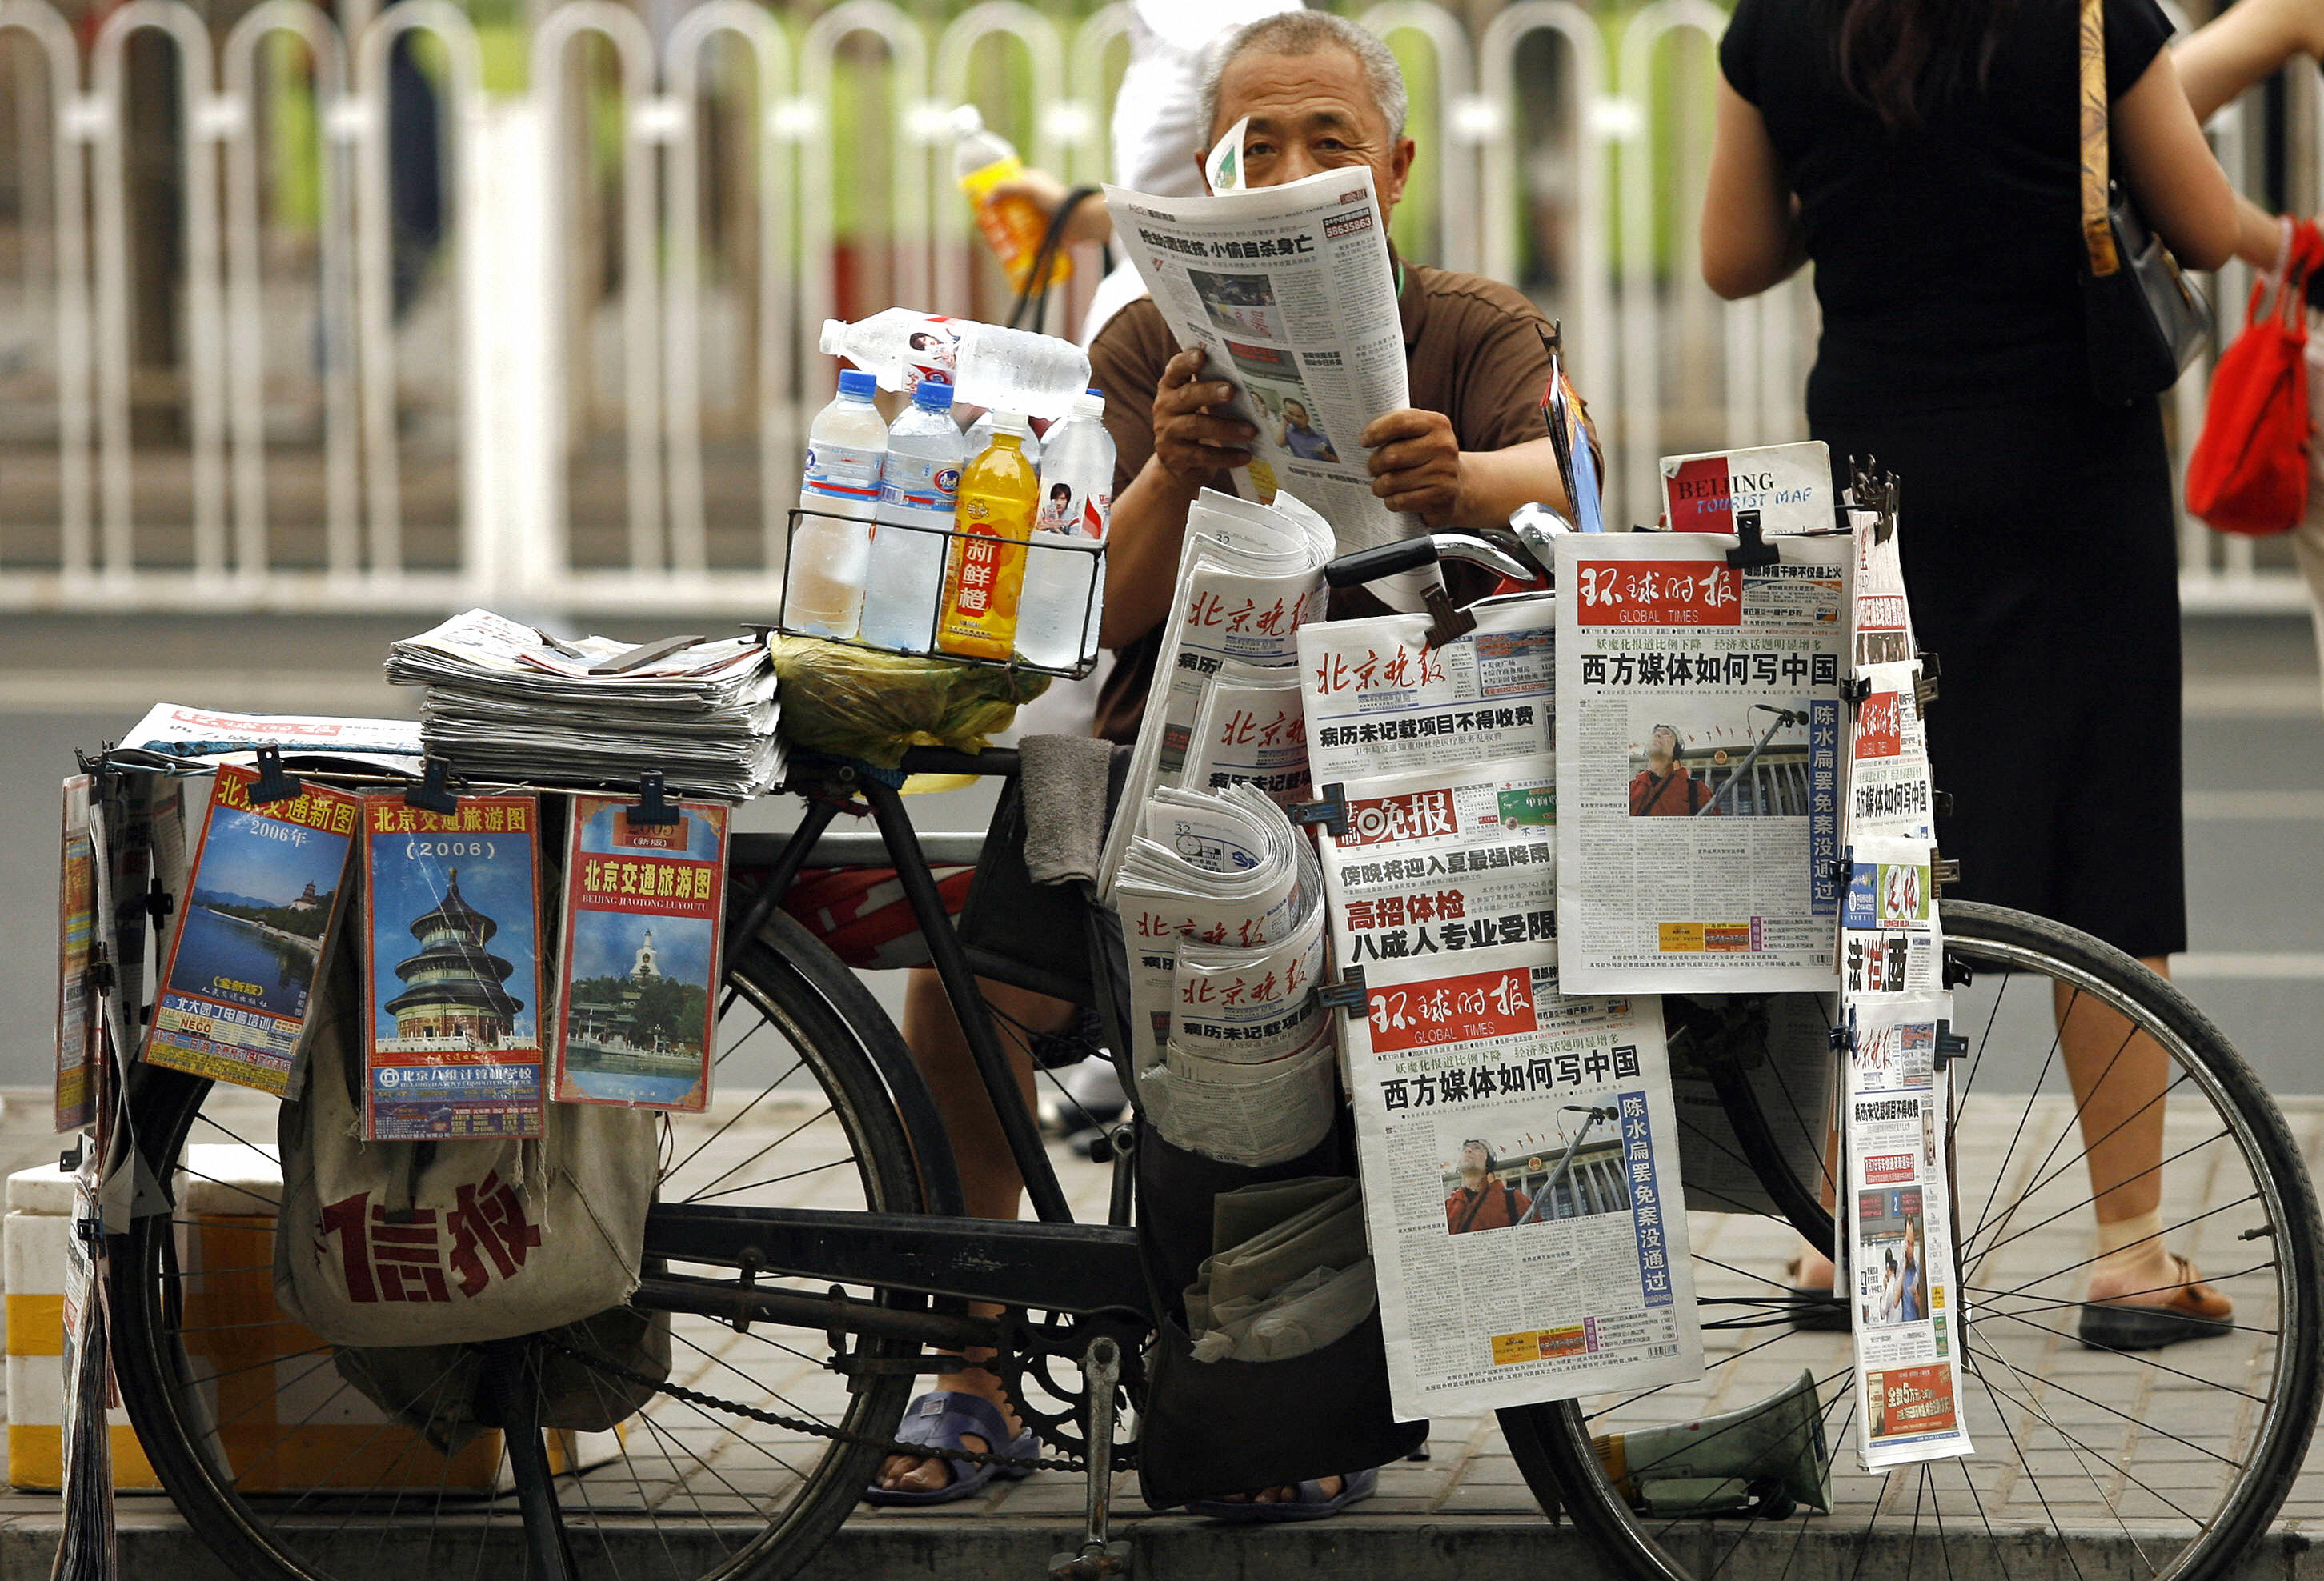 A newspaper vendor sells from his bicycle on a street in Beijing, 28 June 2006. (PETER PARKS/AFP via Getty Images)